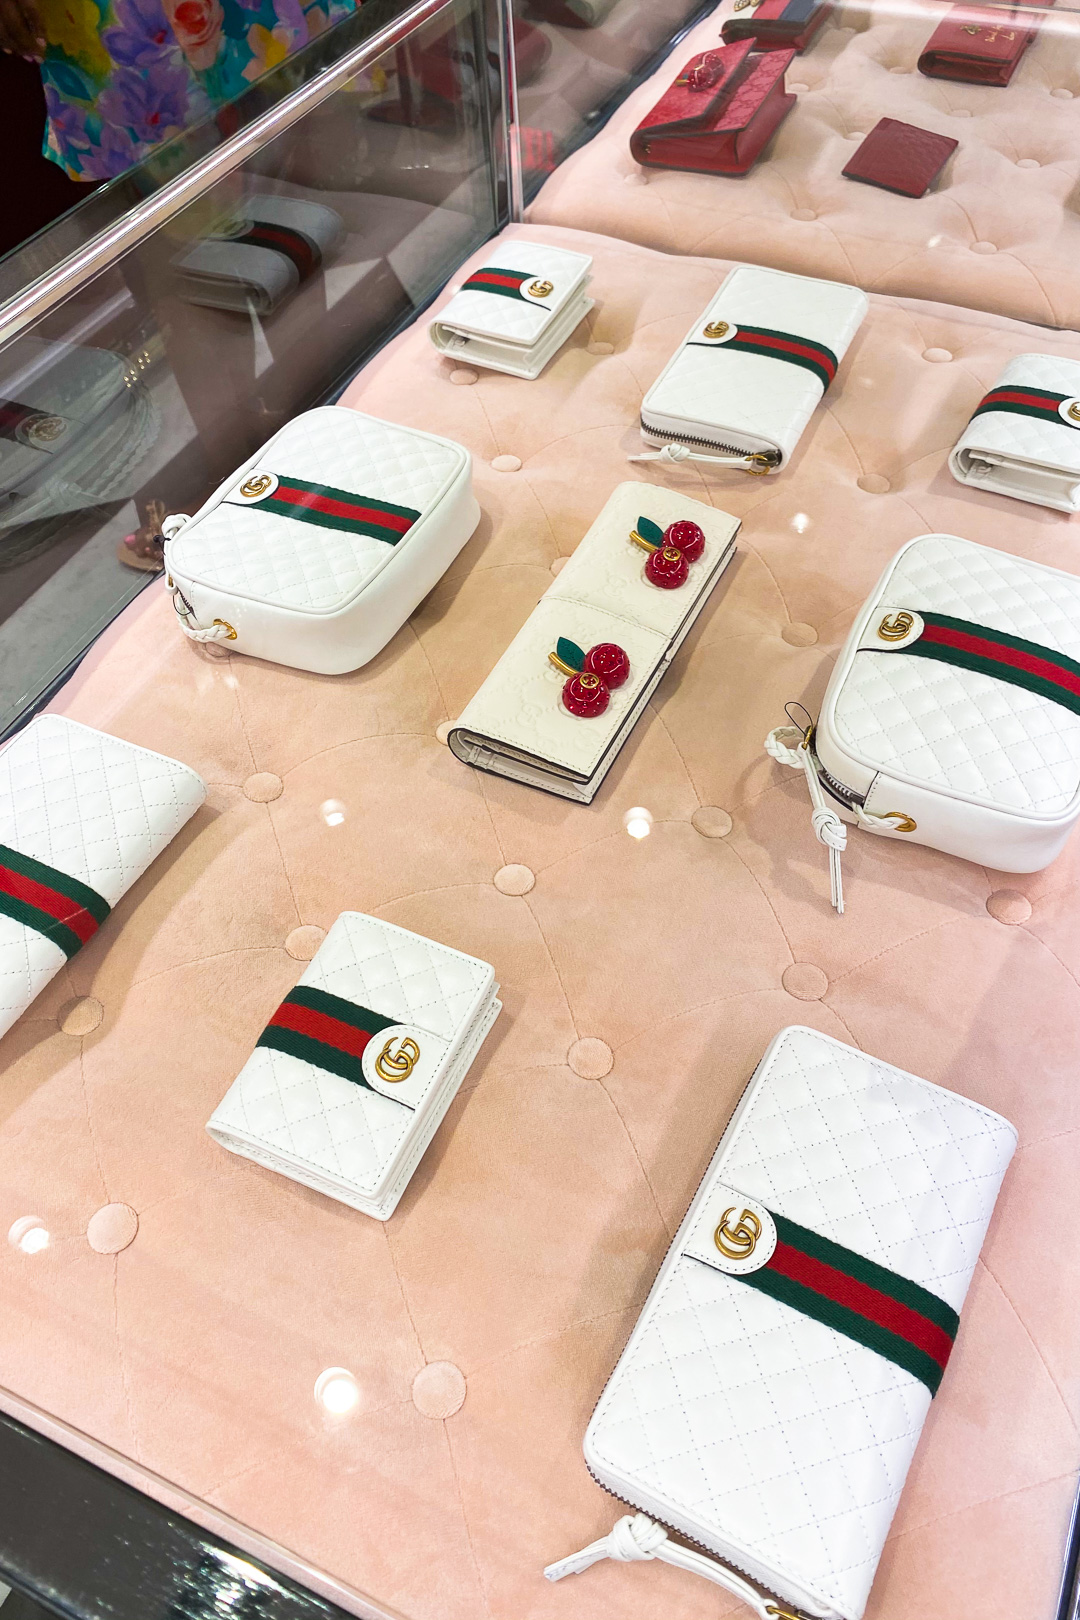 Women's Small Leather Goods at the Gucci Outlet